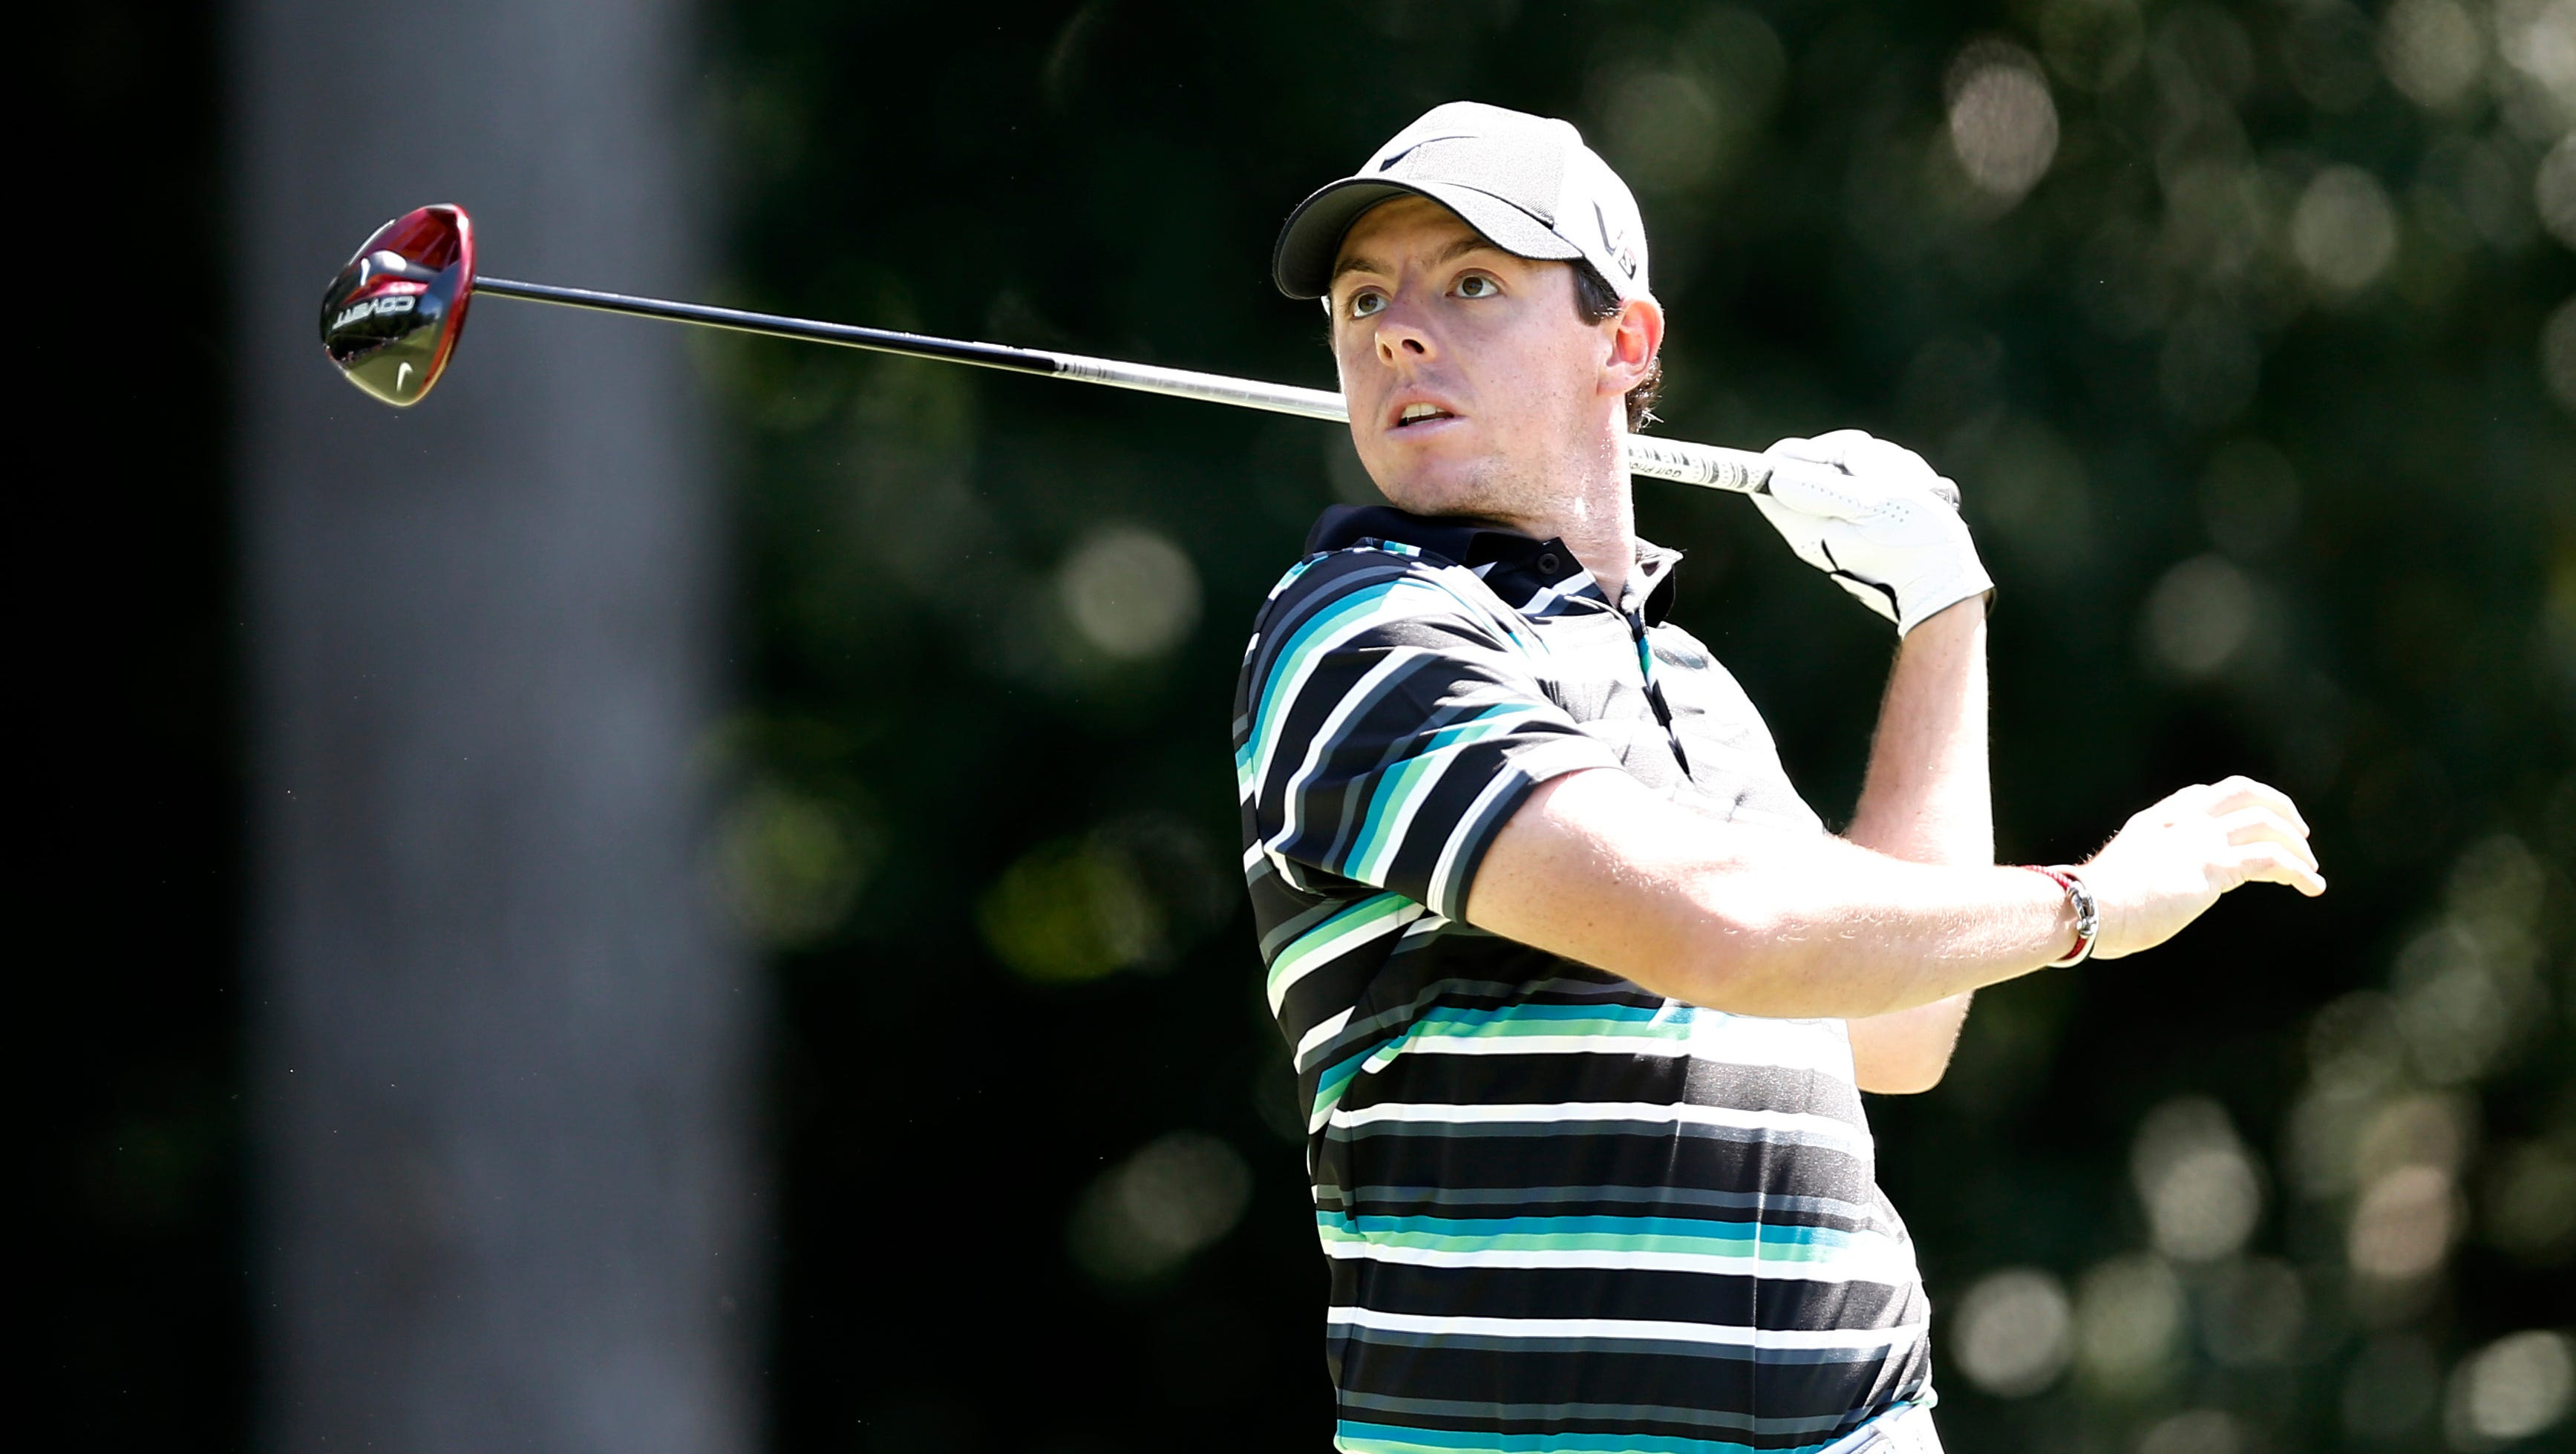 Rory McIlroy's tee shot at No. 4 is headed toward the rough.